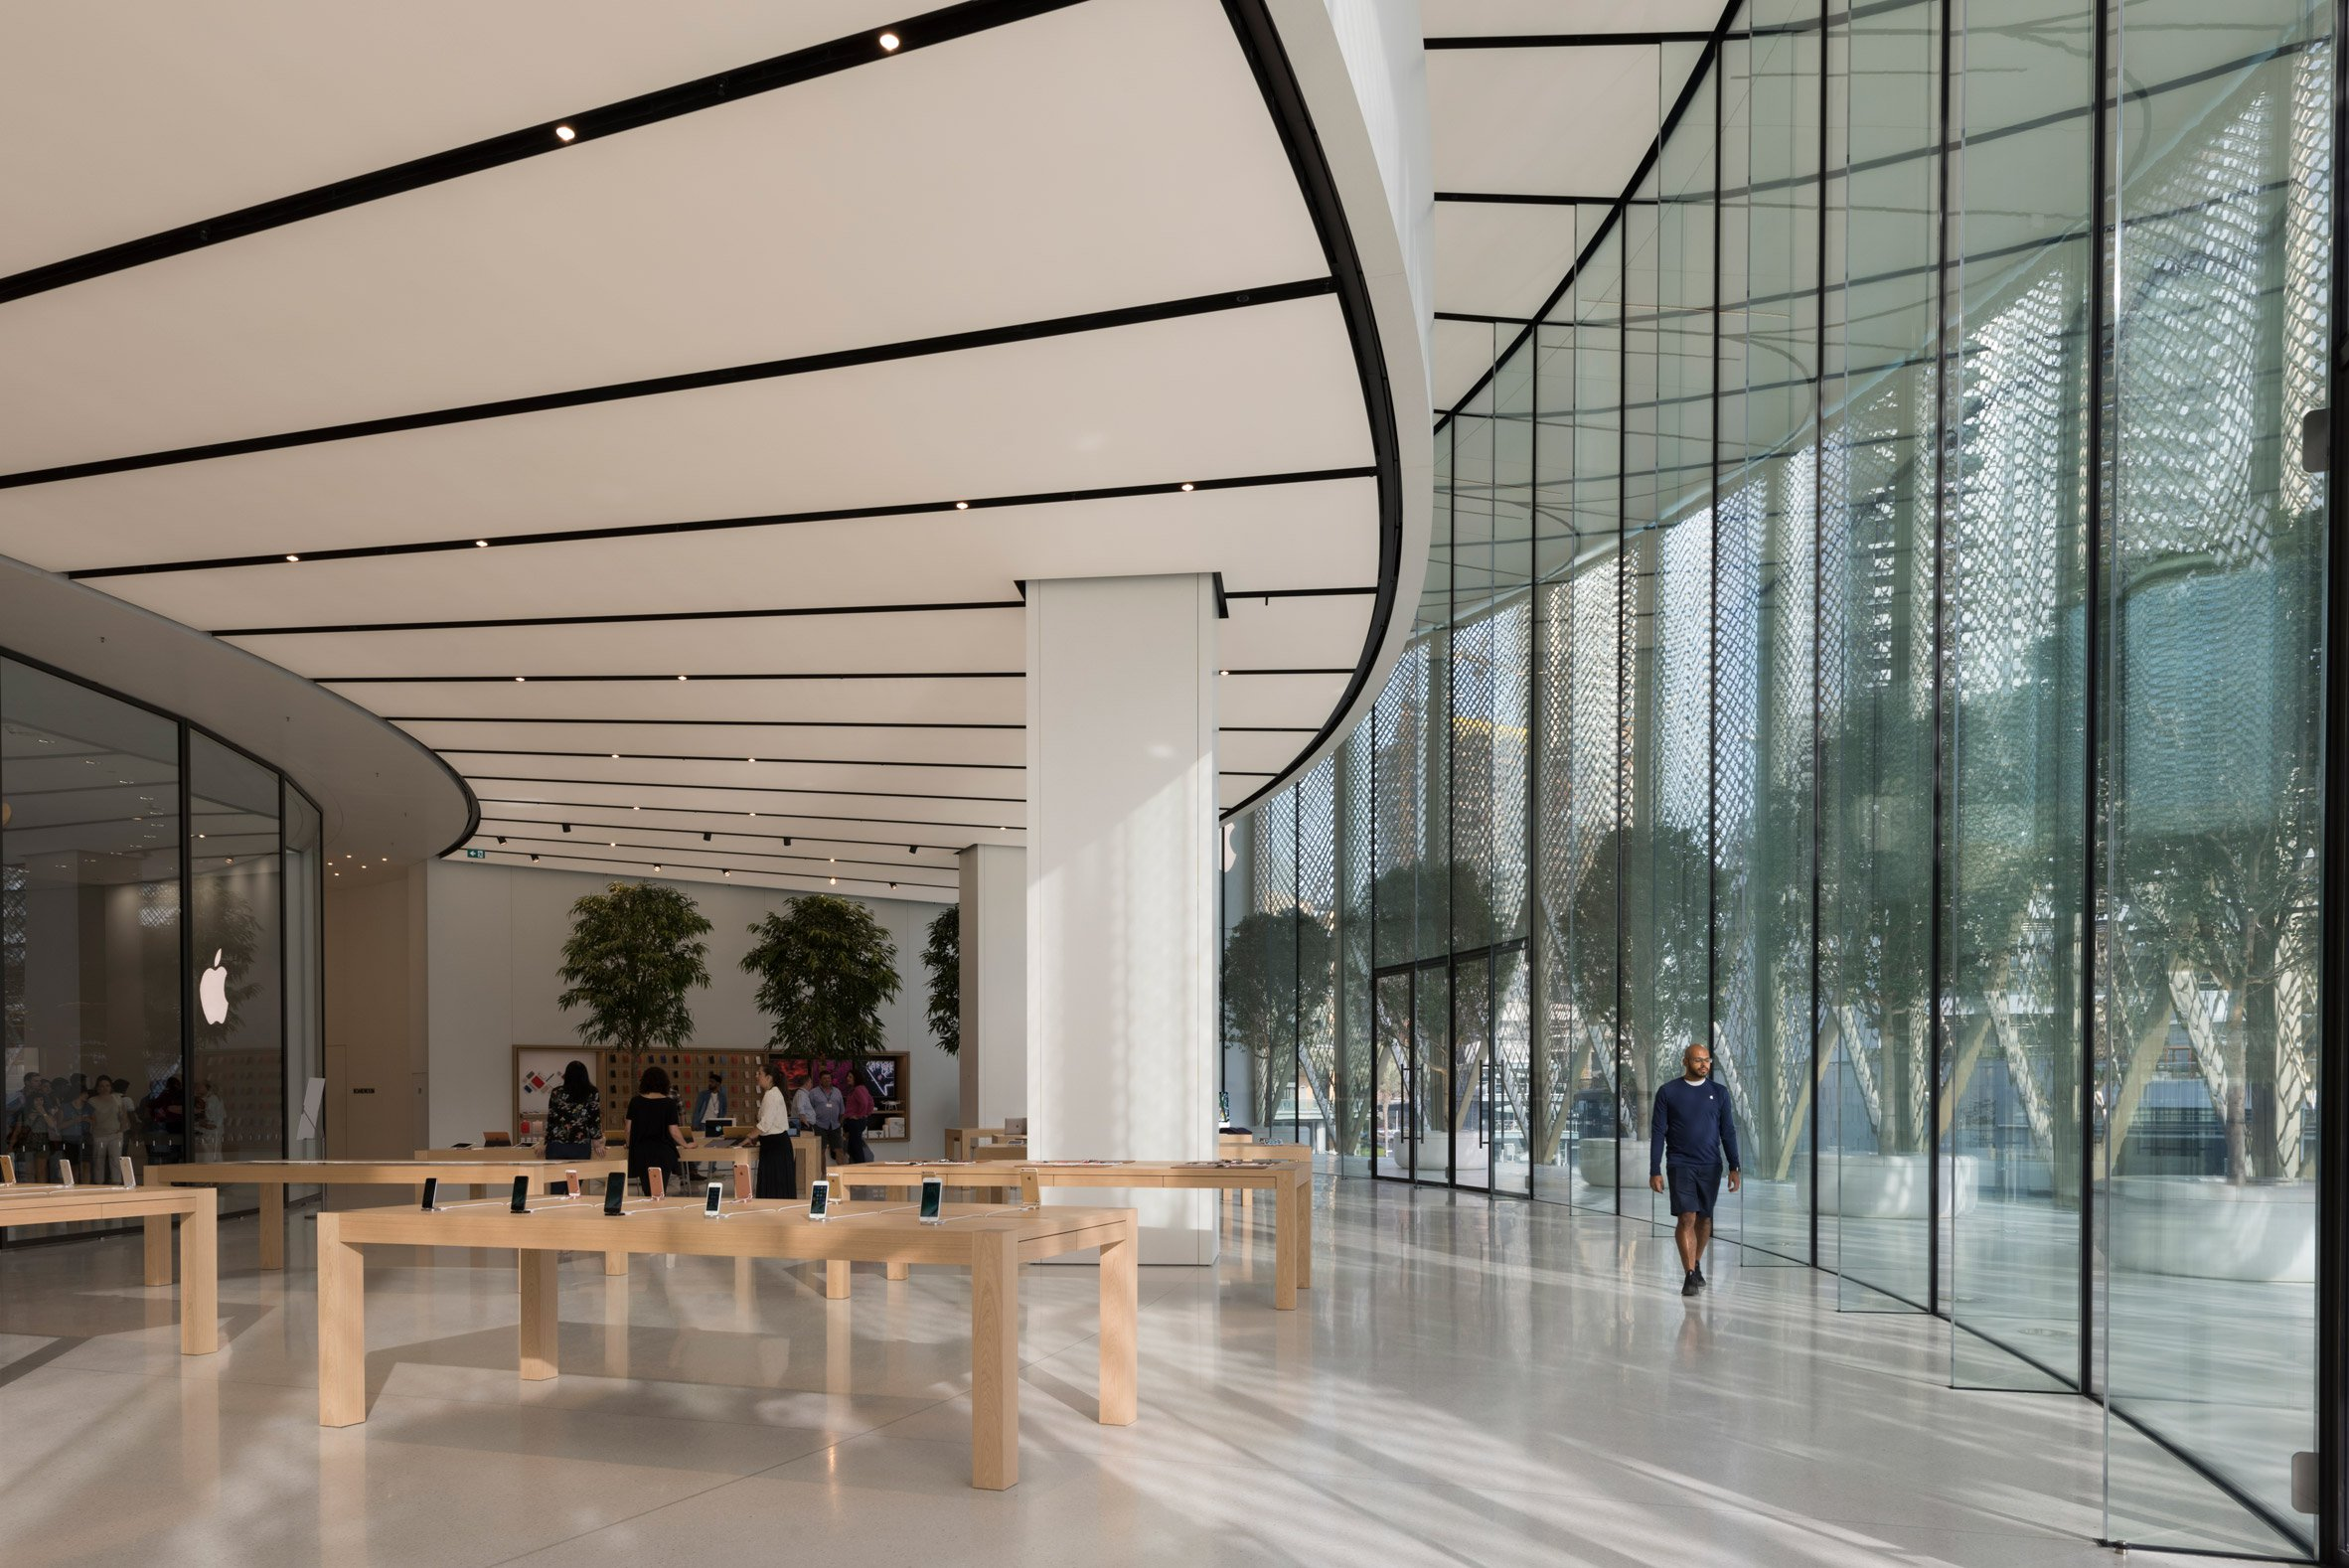 Studio Foster + Partners Adds Carbon-Fibre Covers to Dubai Apple Store foster + partners Studio Foster + Partners Adds Carbon-Fibre Covers to Dubai Apple Store Studio Foster Partners Adds Carbon Fibre Covers to Dubai Apple Store 5